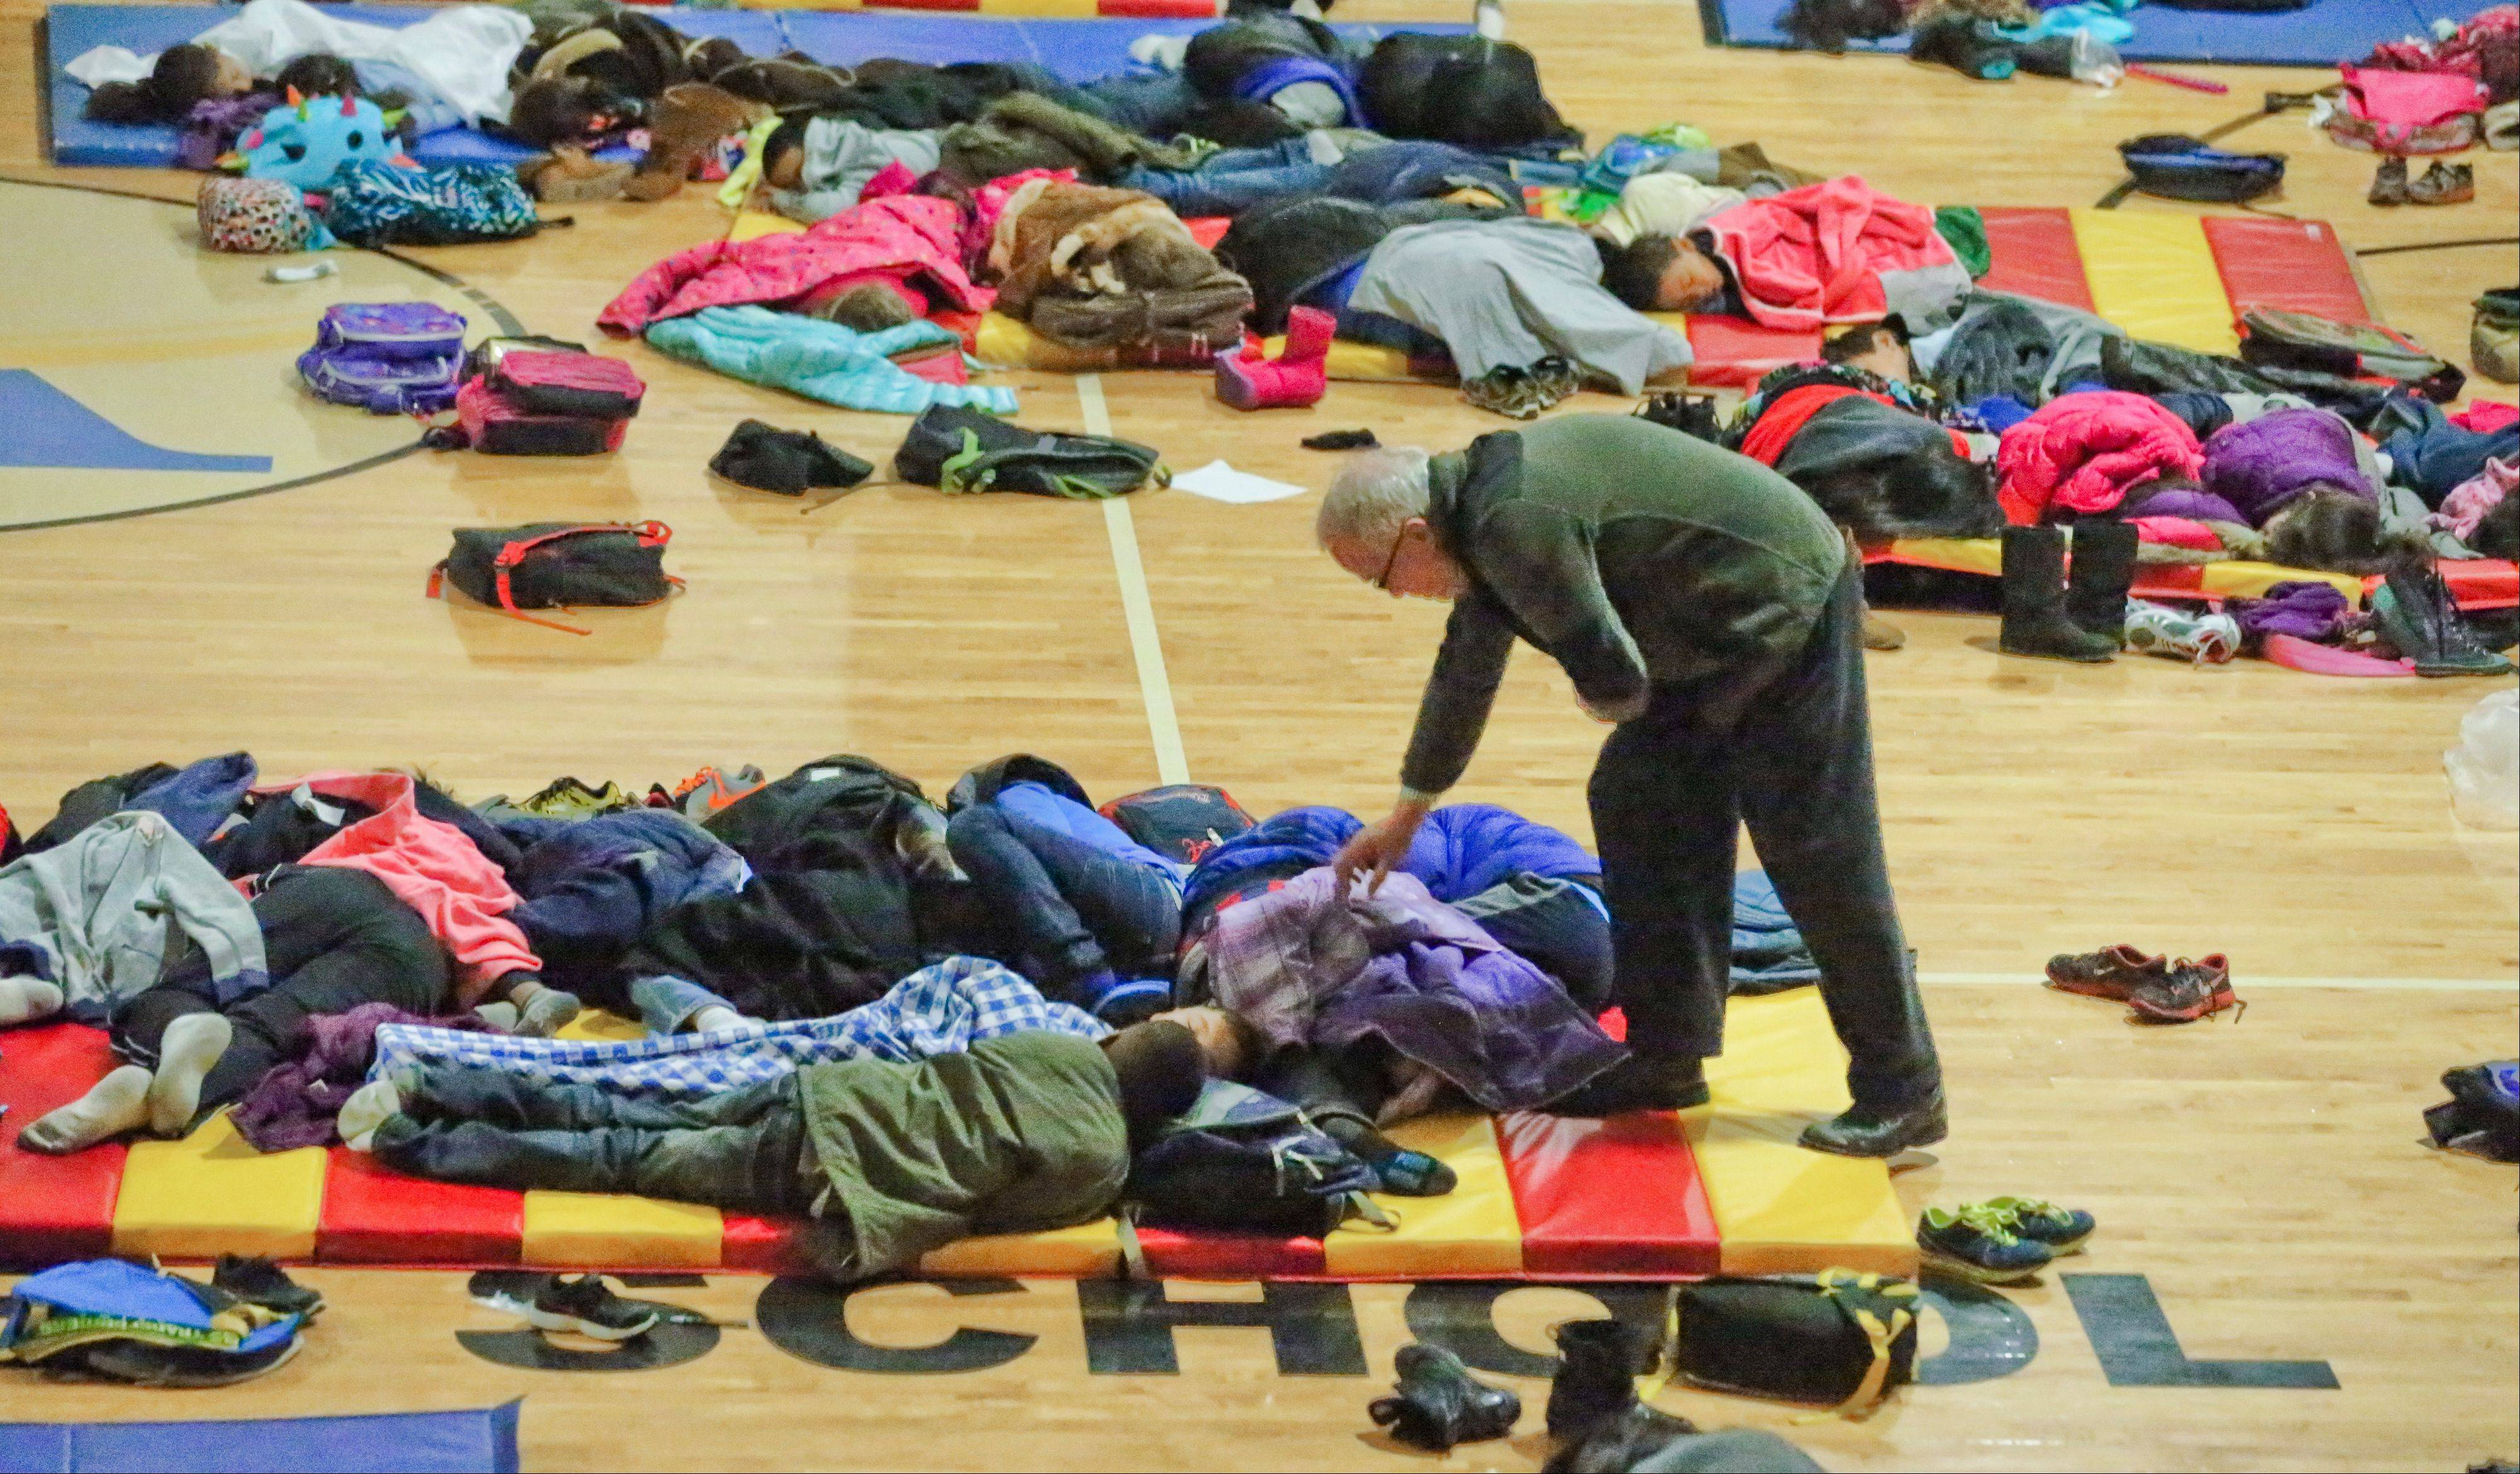 A teacher at E. Rivers Elementary school covers sleeping children in the gym Wednesday in Atlanta. A rare snowstorm left thousands across the South frozen in their tracks, with workers sleeping in their offices, students camping in their schools and commuters abandoning cars along the highway to seek shelter in churches or even grocery stores.